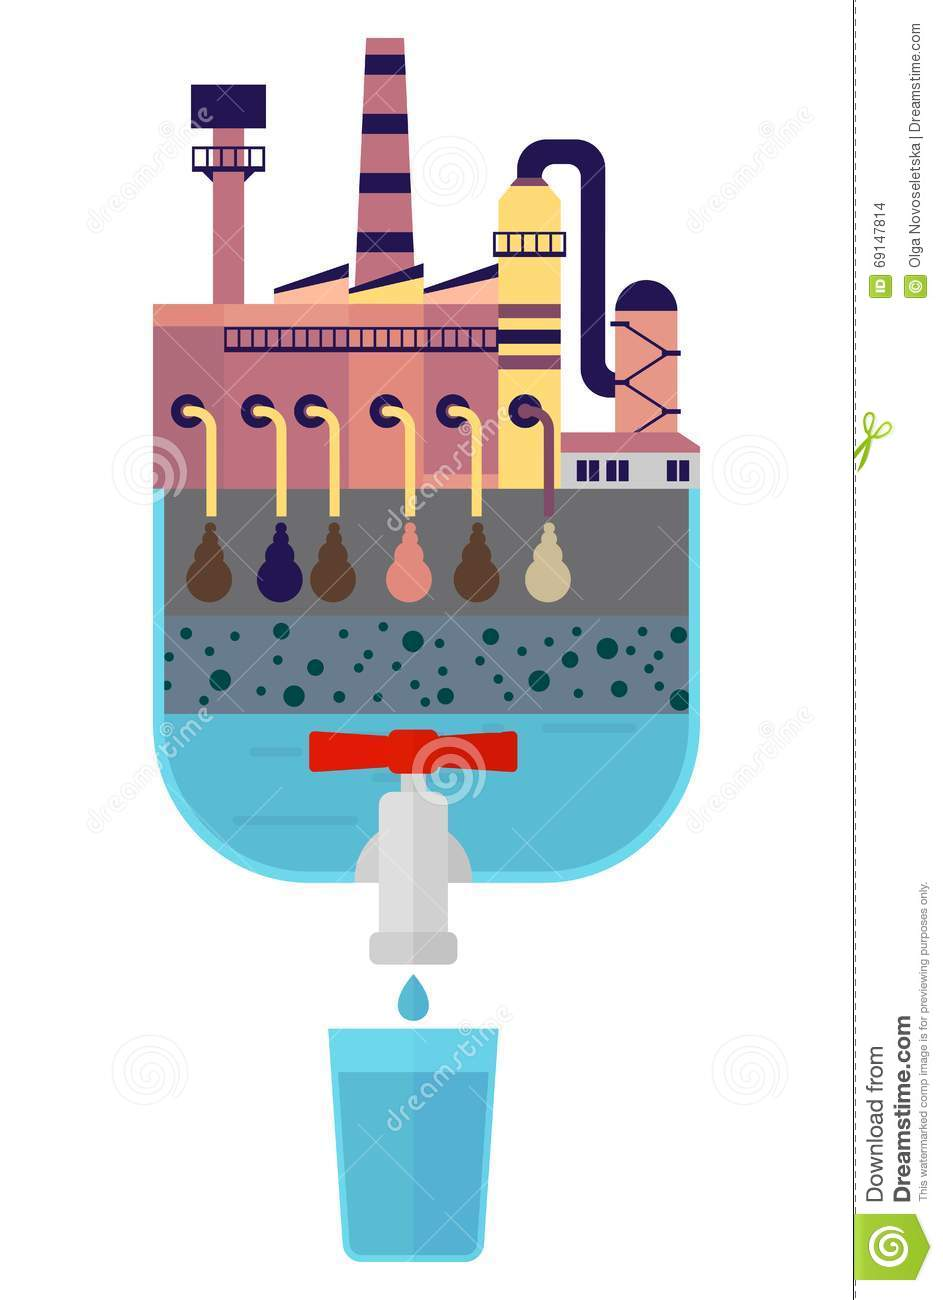 industrial pollution clipart - photo #10